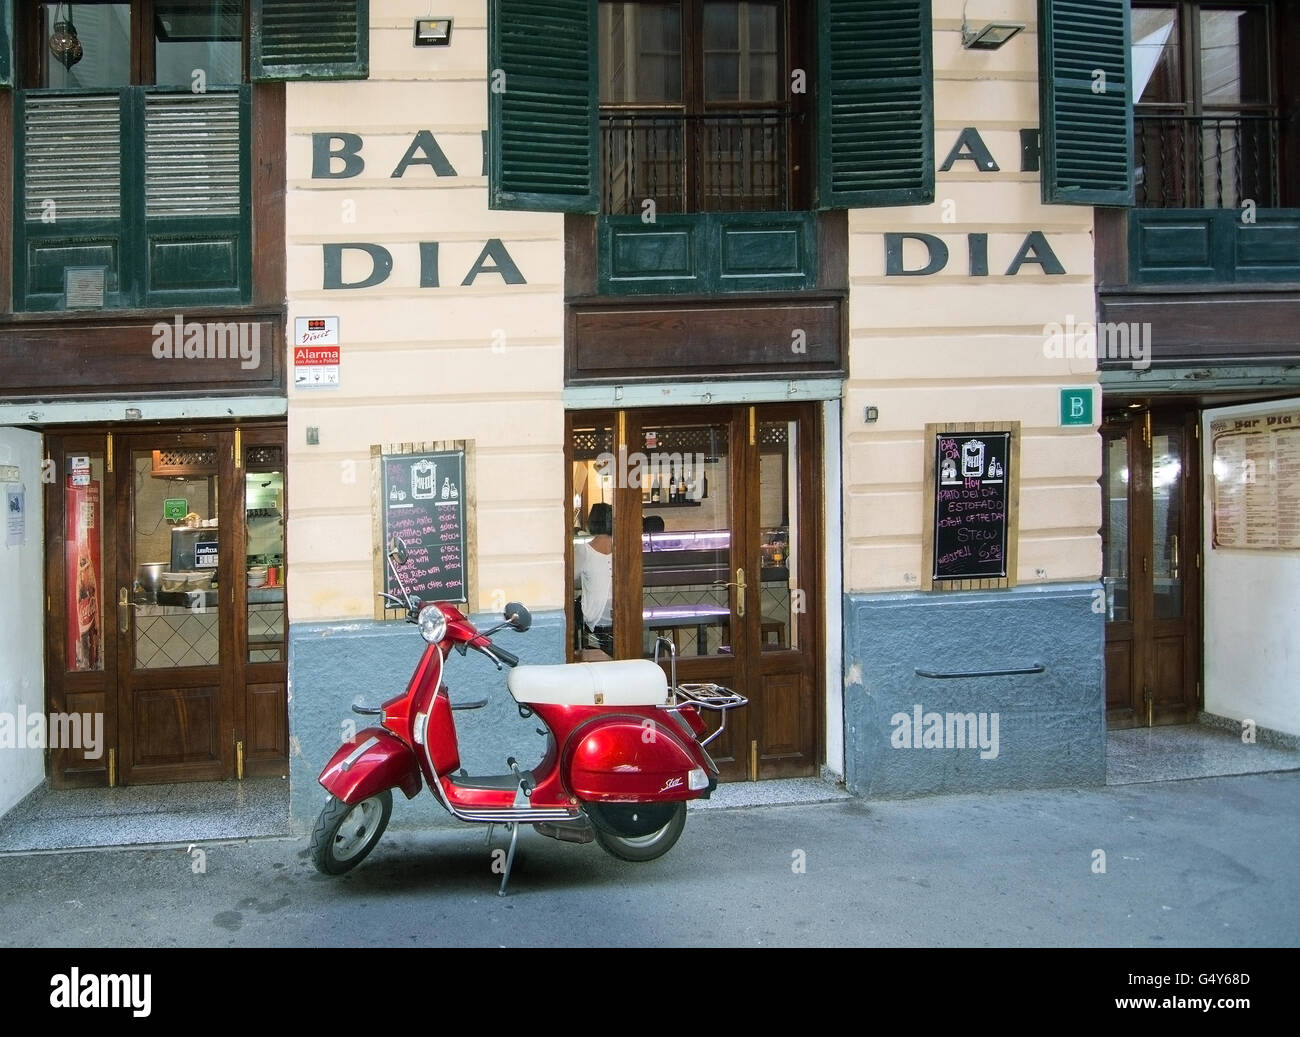 Red vespa scooter parked in front of Bar Dia Restaurant on Carrer des Apuntadores in Palma de Mallorca, Balearic - Stock Image